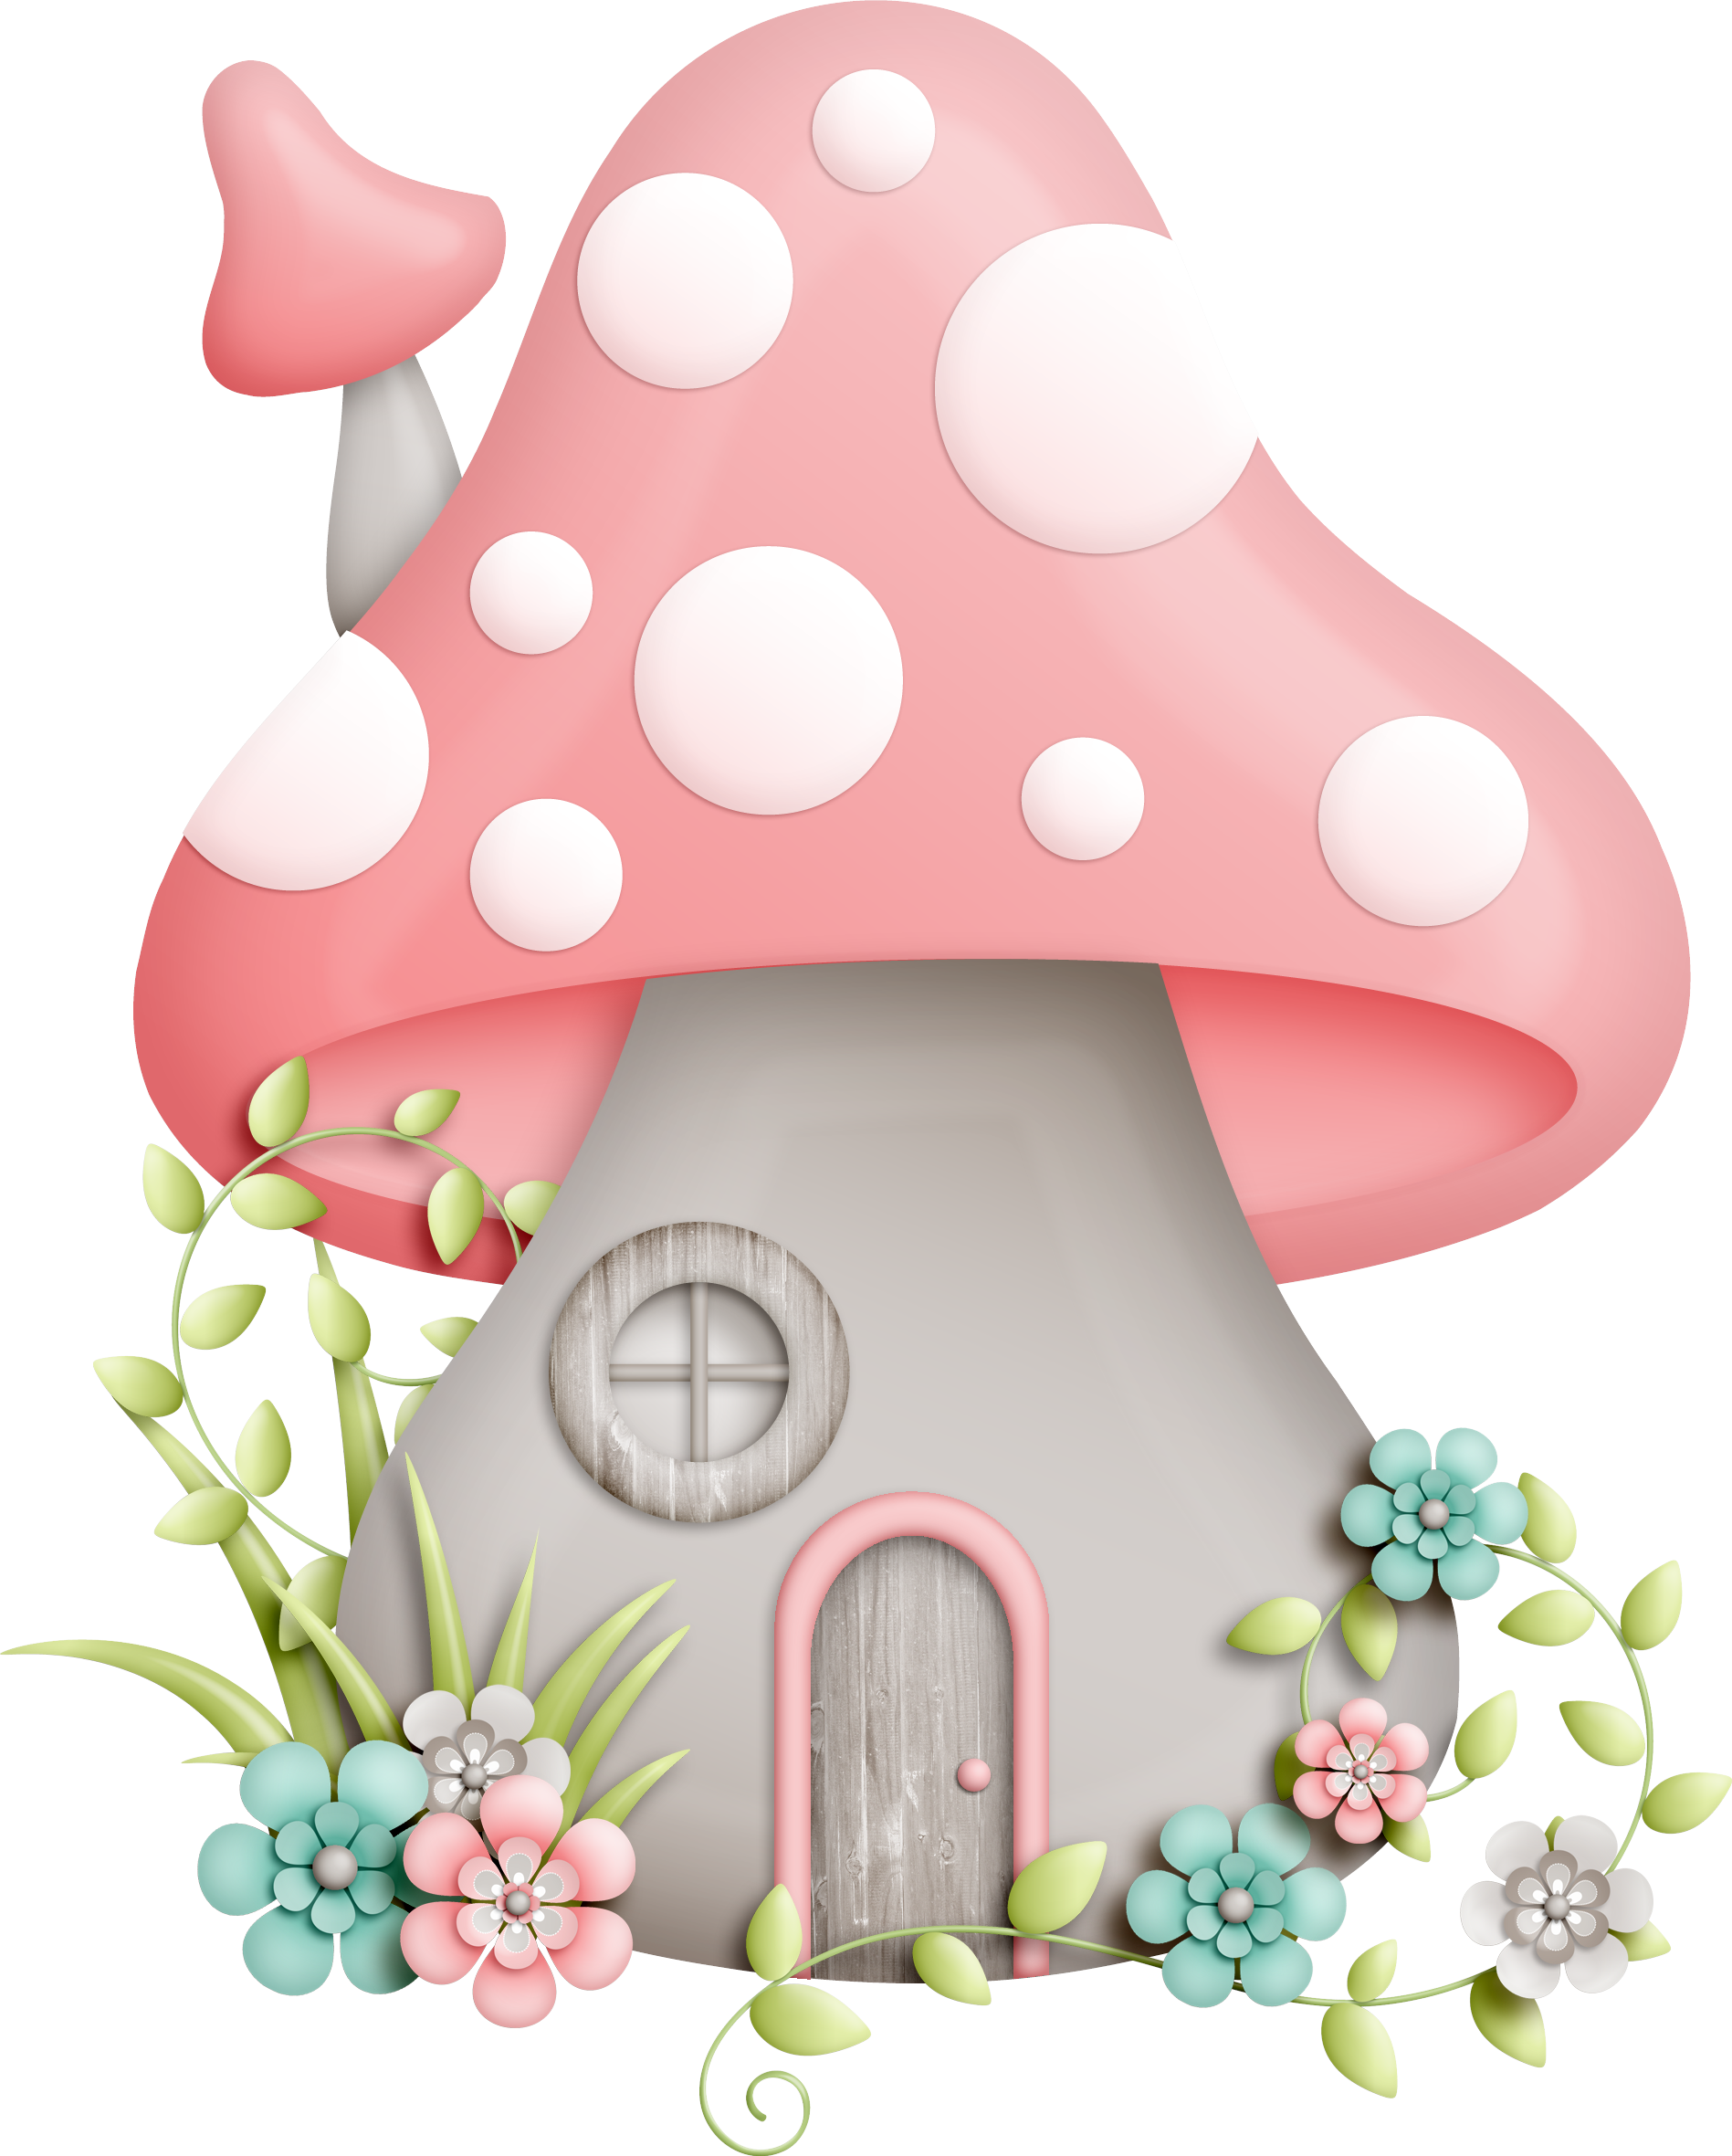 vector free download Pin by mayra on. Mushrooms clipart fairy cottage.